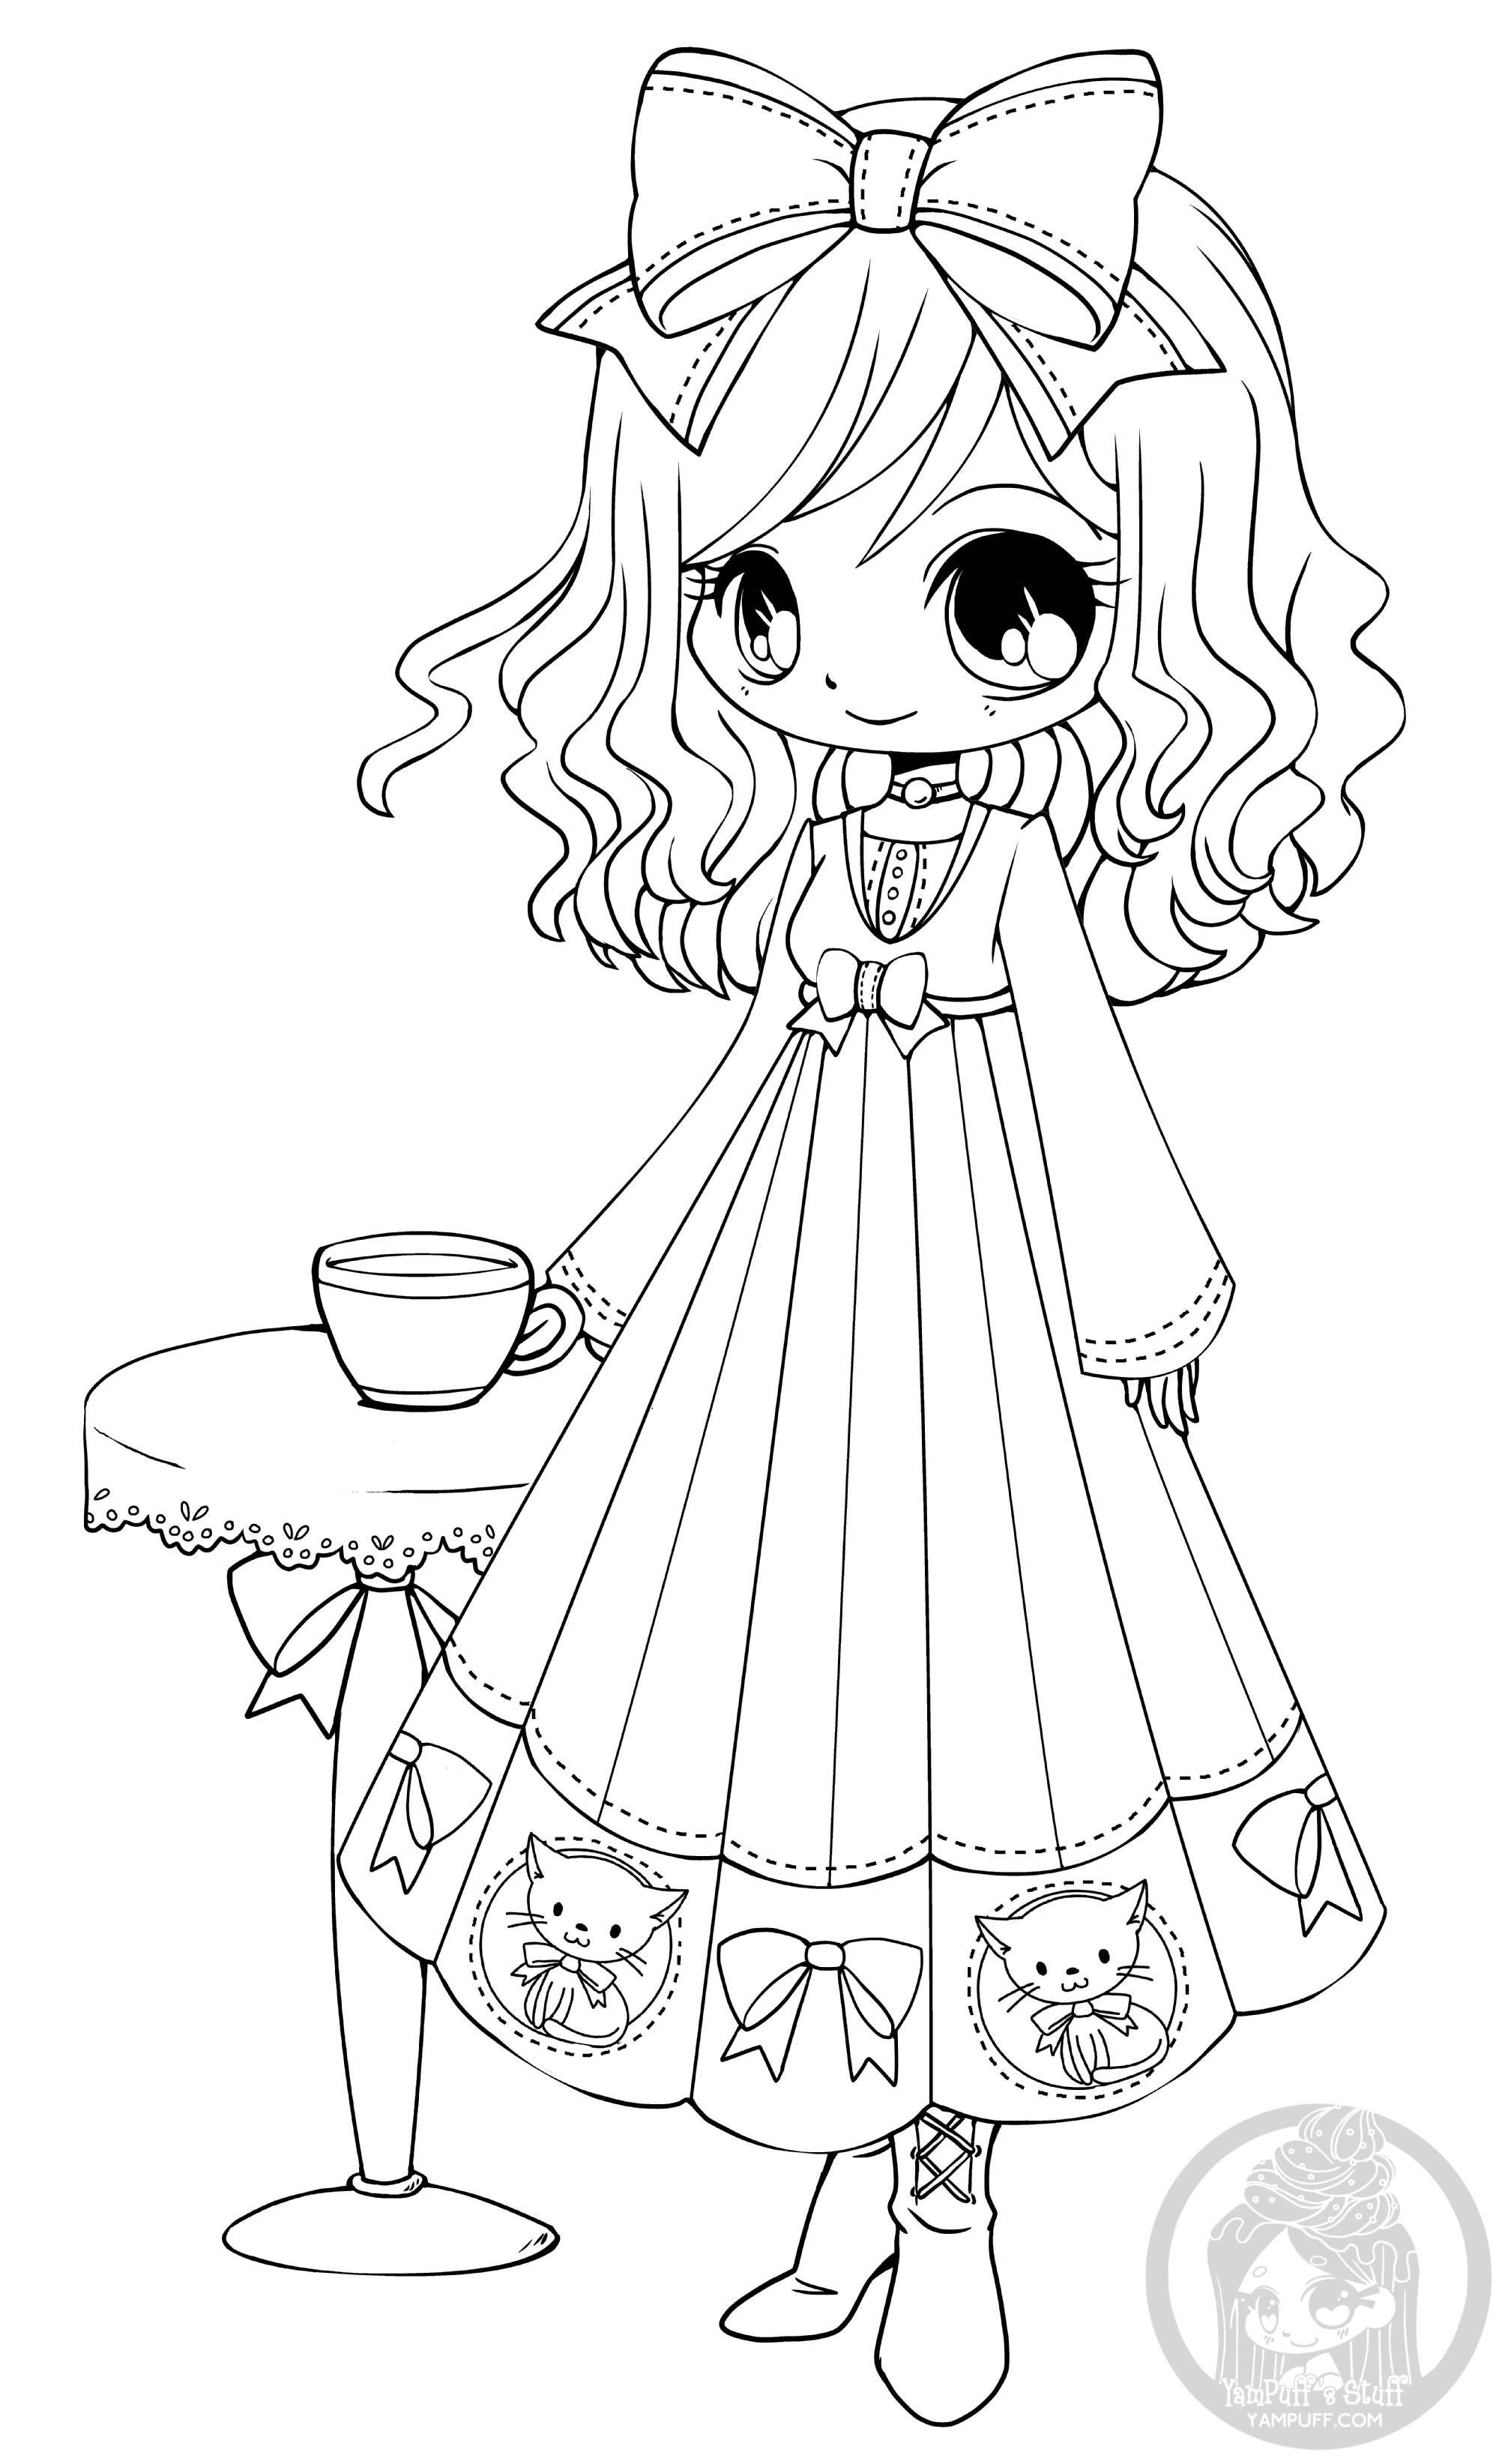 coloring pages of chibi girls chibis free chibi coloring pages yampuff39s stuff girls of chibi coloring pages